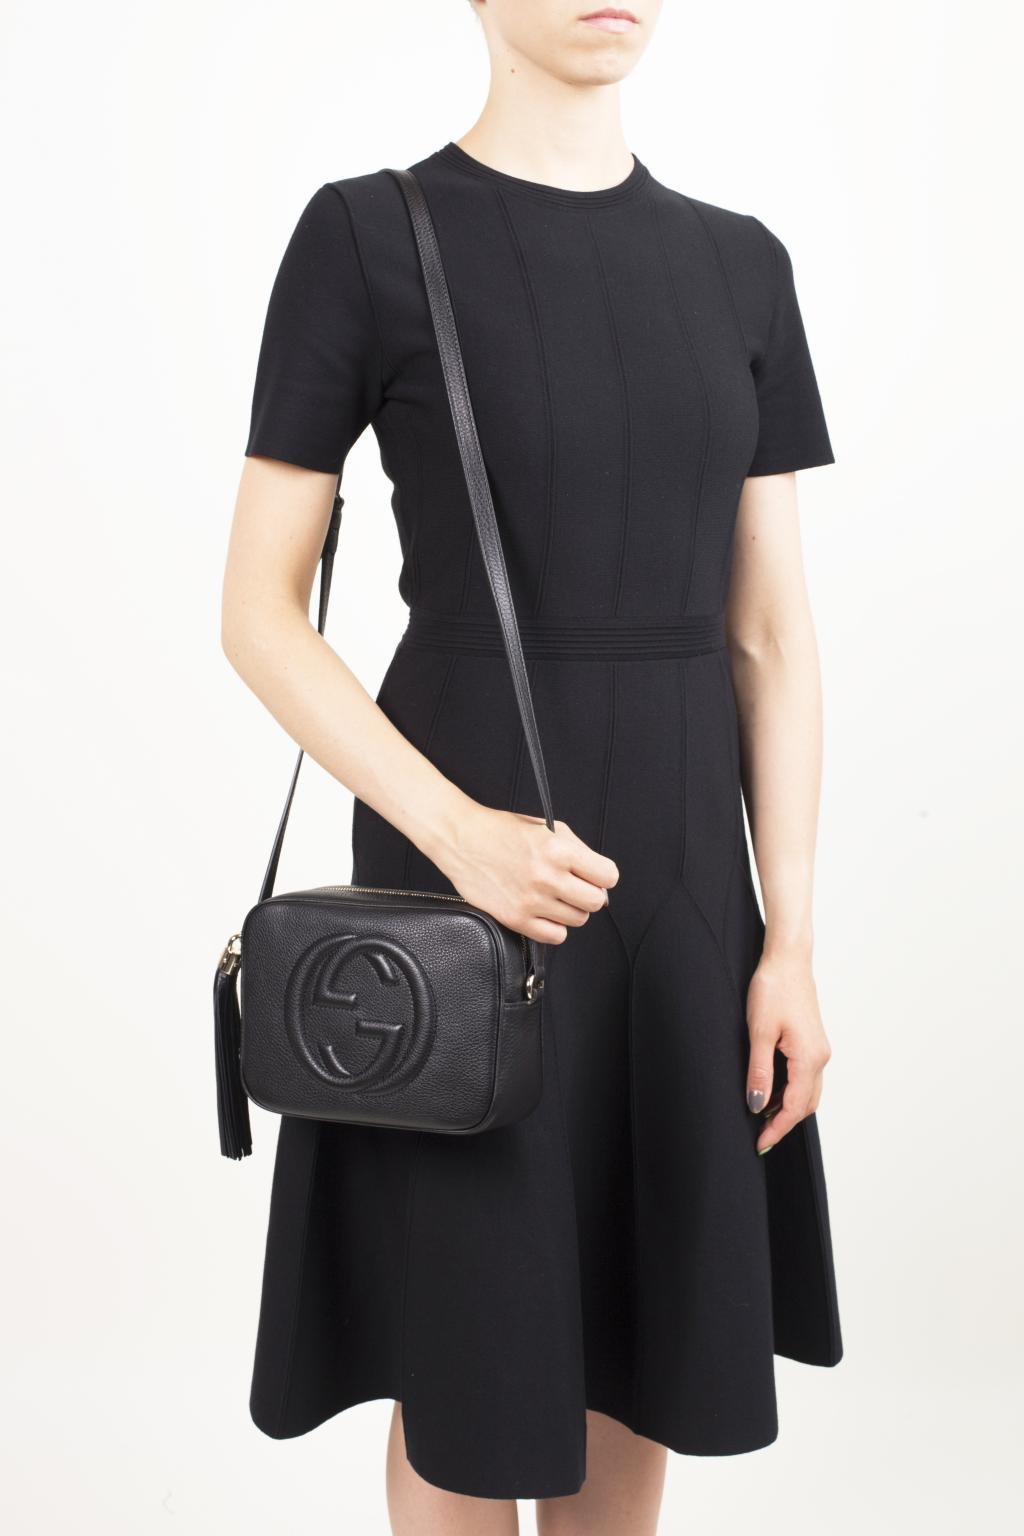 Gucci Leather Soho Camera Bag In Black Lyst